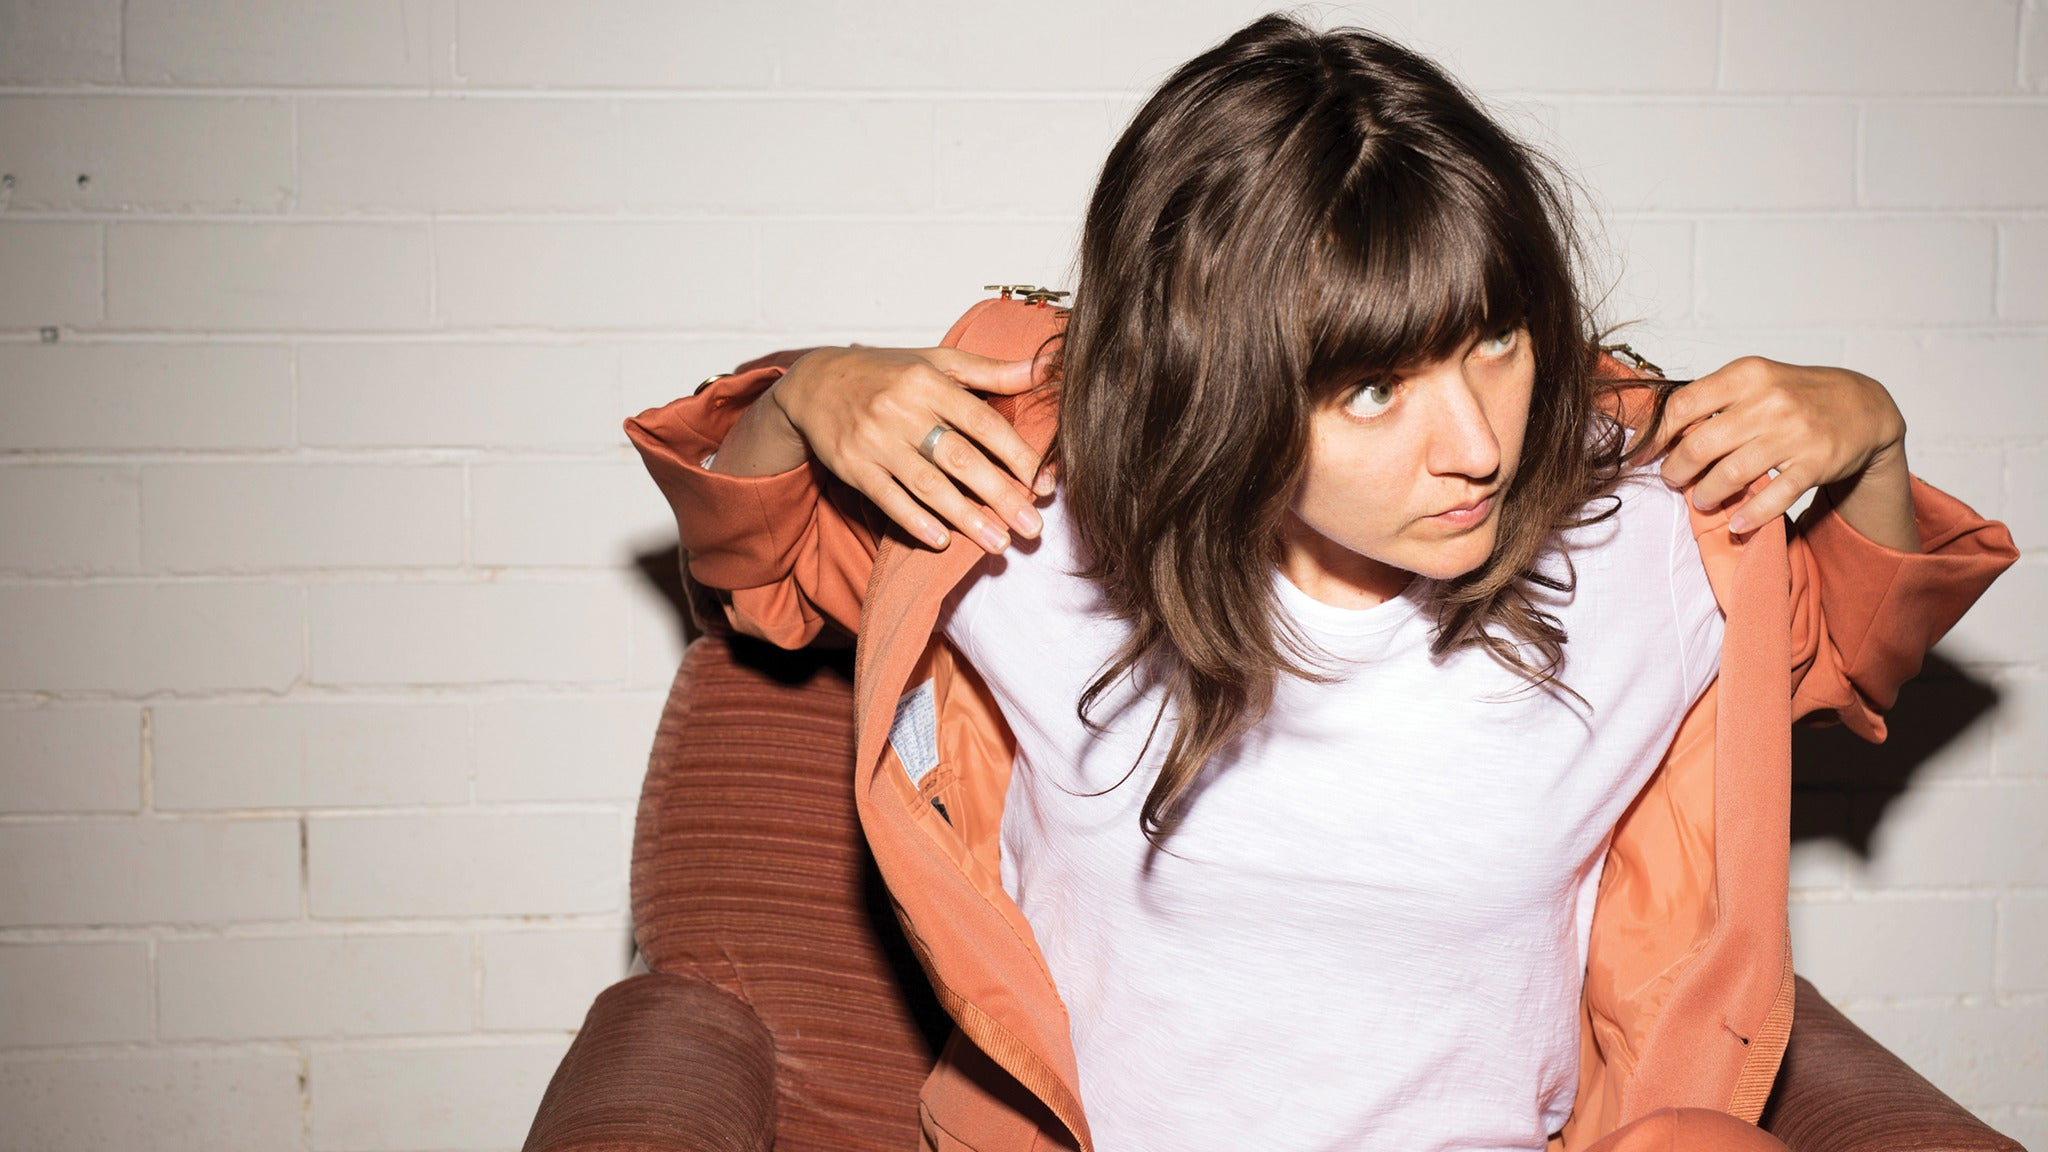 Courtney Barnett to support Nick Cave & the Bad Seeds at 3Arena in Dublin